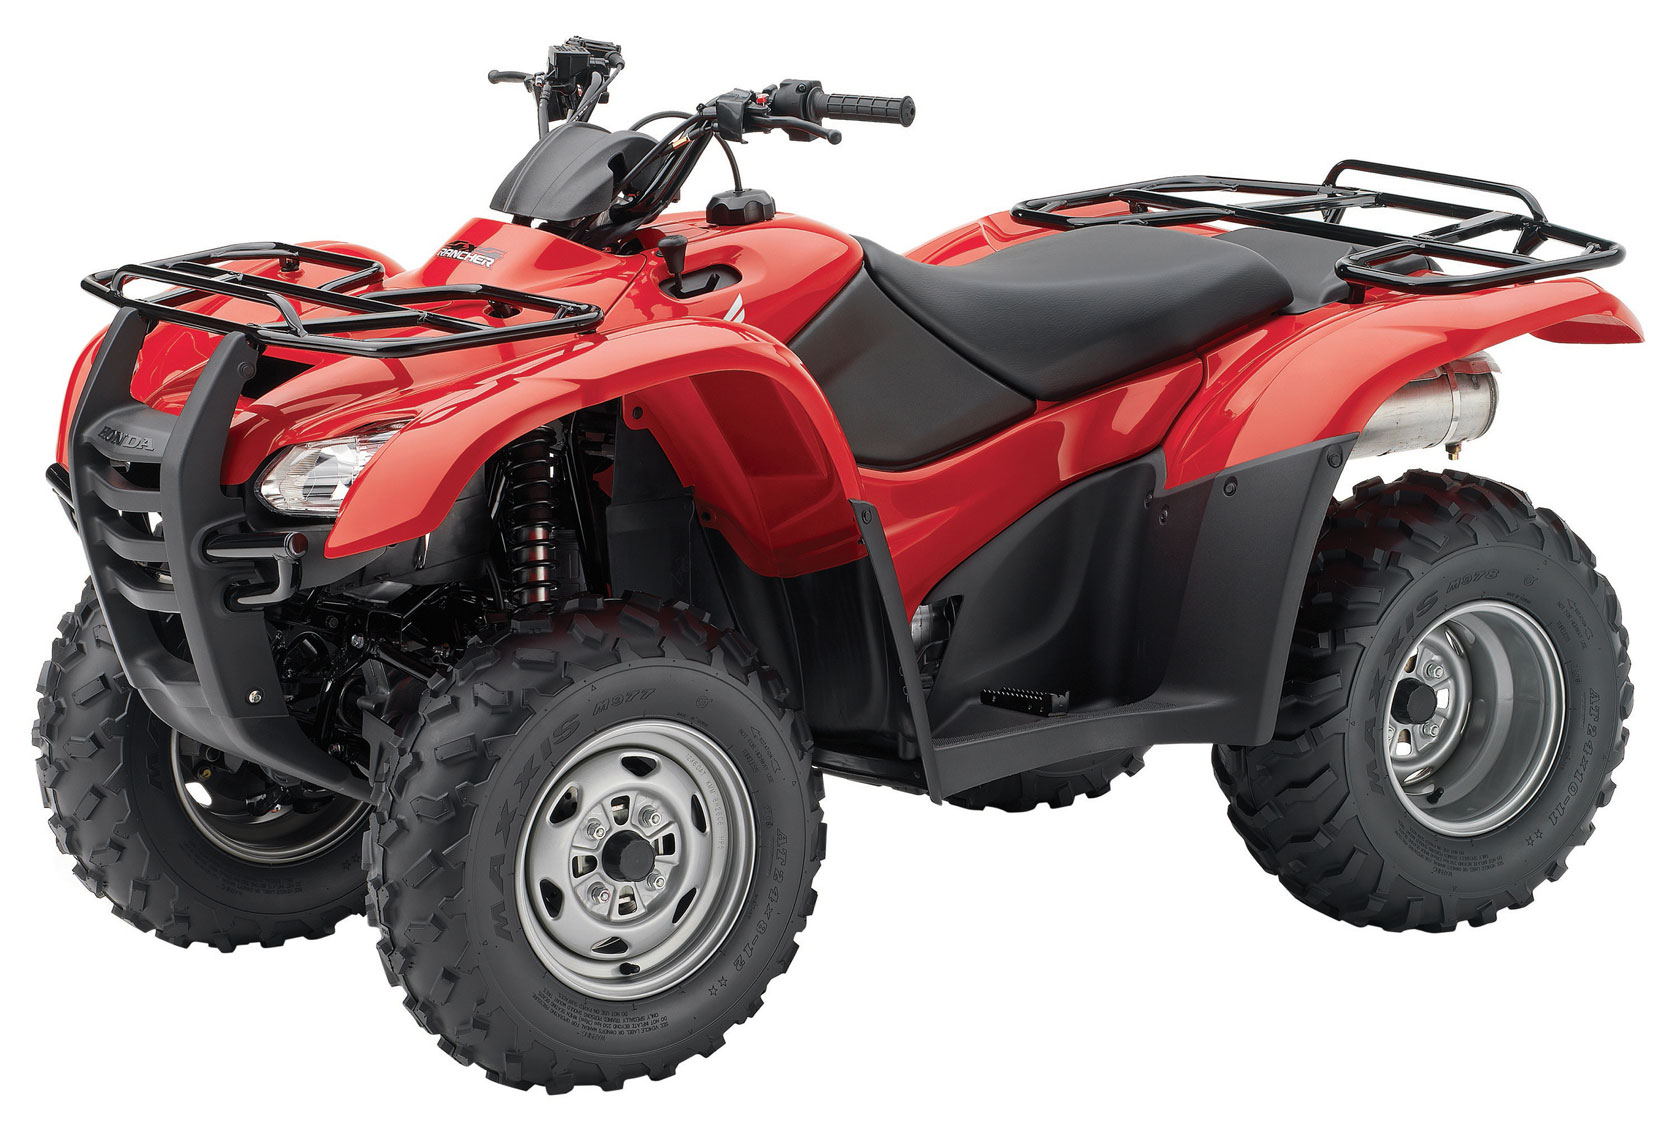 Honda Fourtrax Rancher 4x4 With Power Steering Trx420fpm